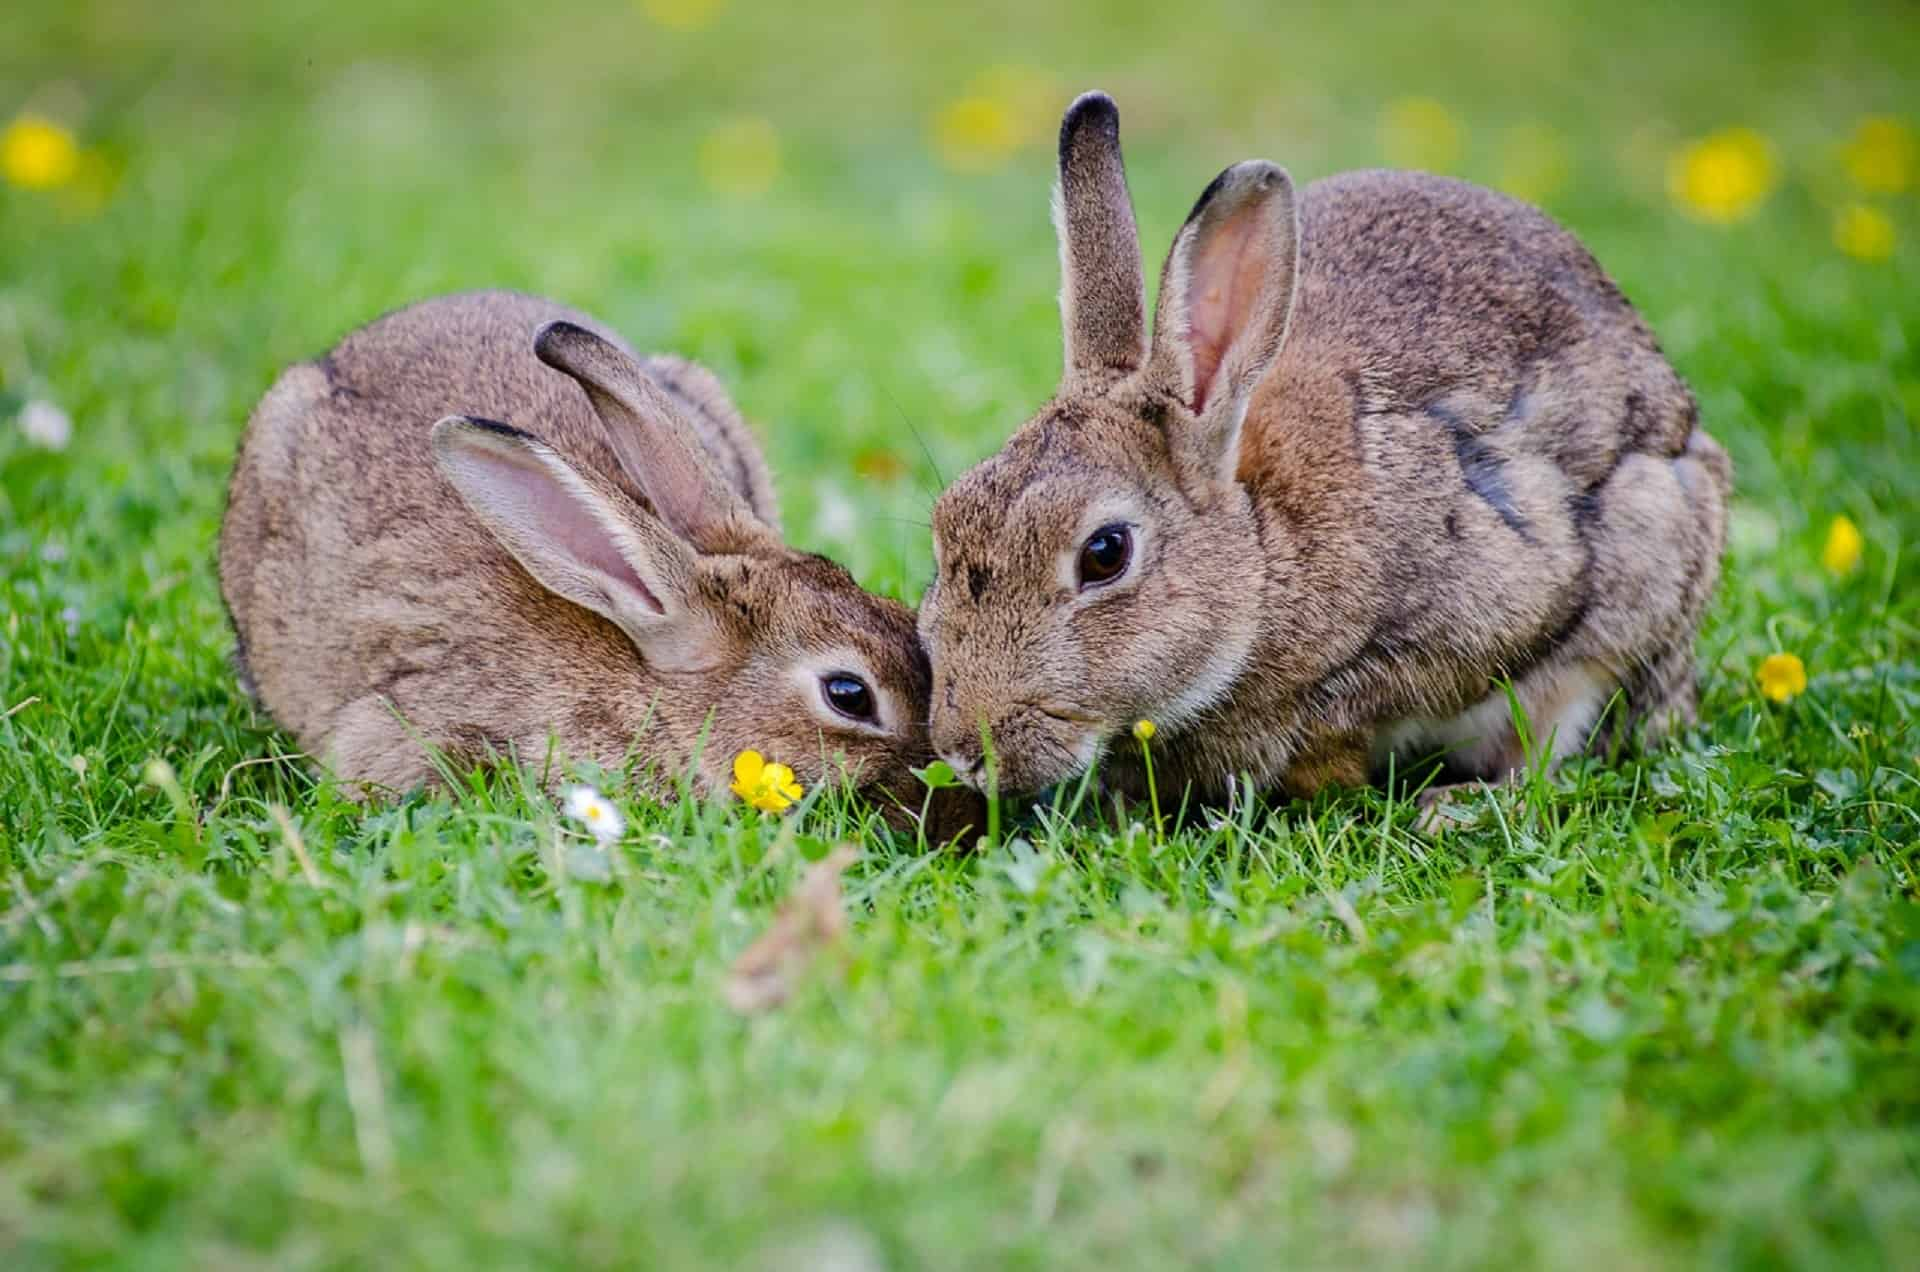 Is Rosemary safe for rabbits